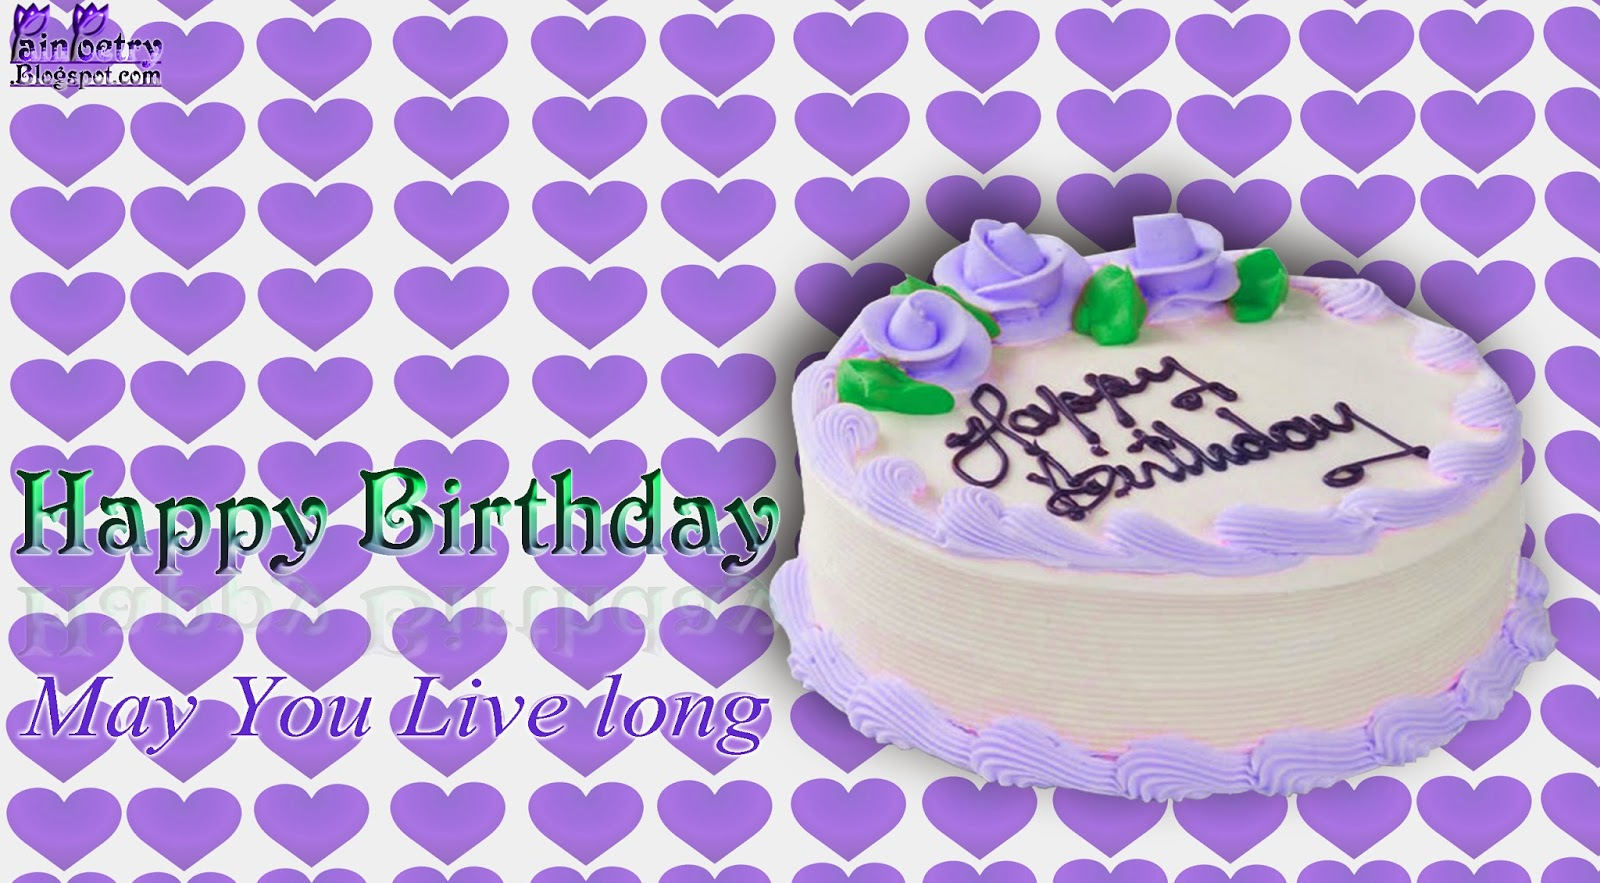 Happy-Birthday-Wishes-Walpaper-With-Purple-Hearts-Background-Image-Wide